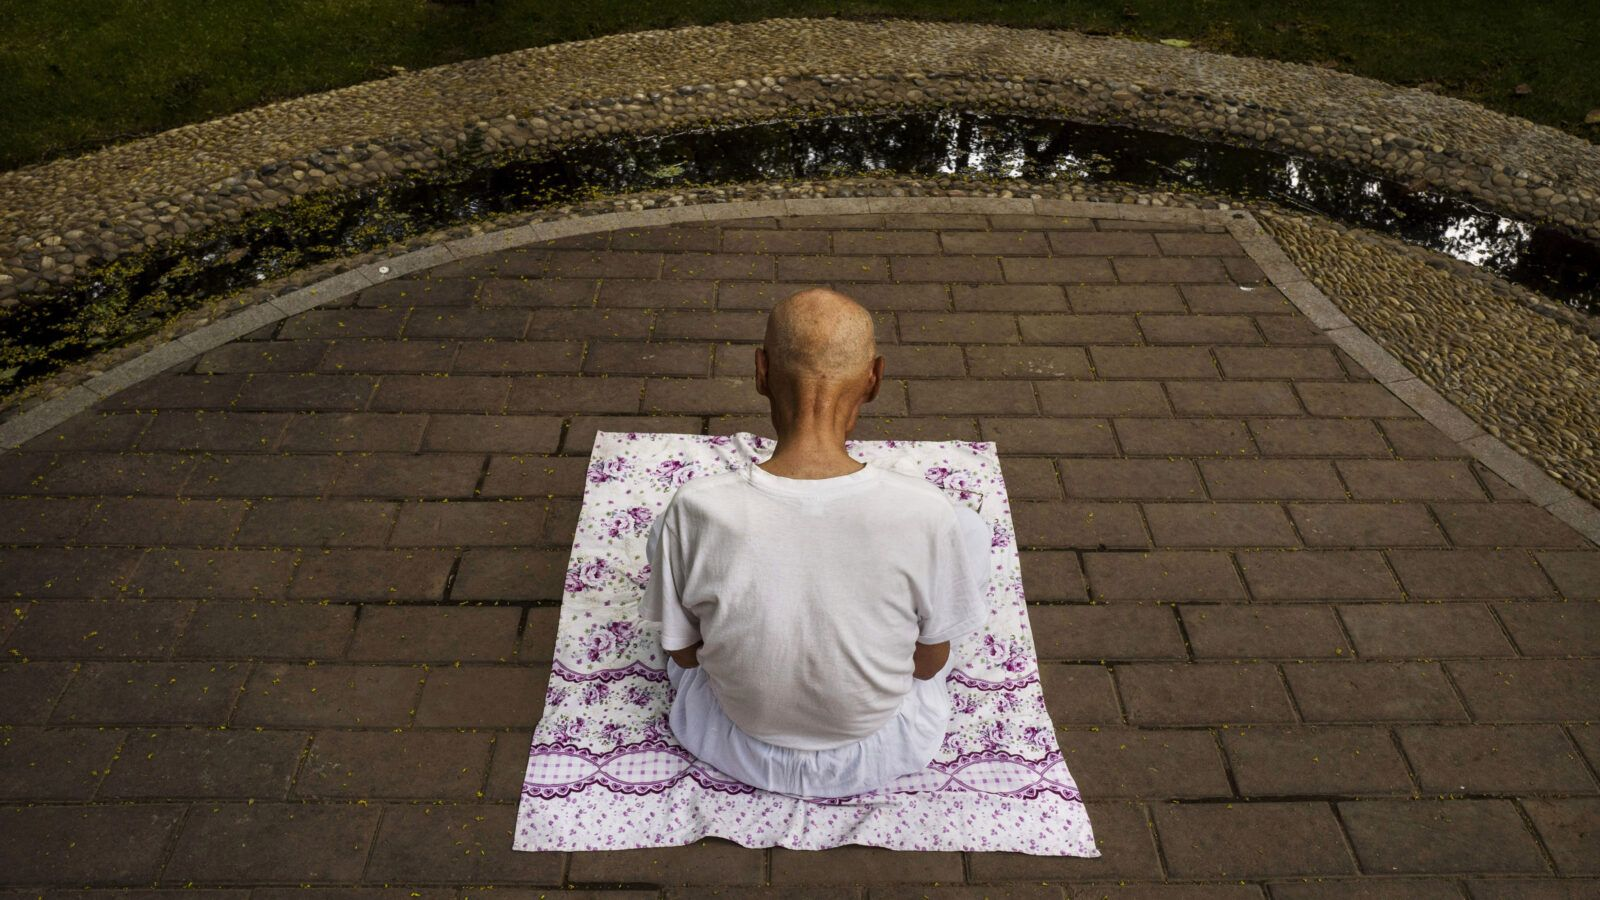 A man sitting on a blanket outside meditating